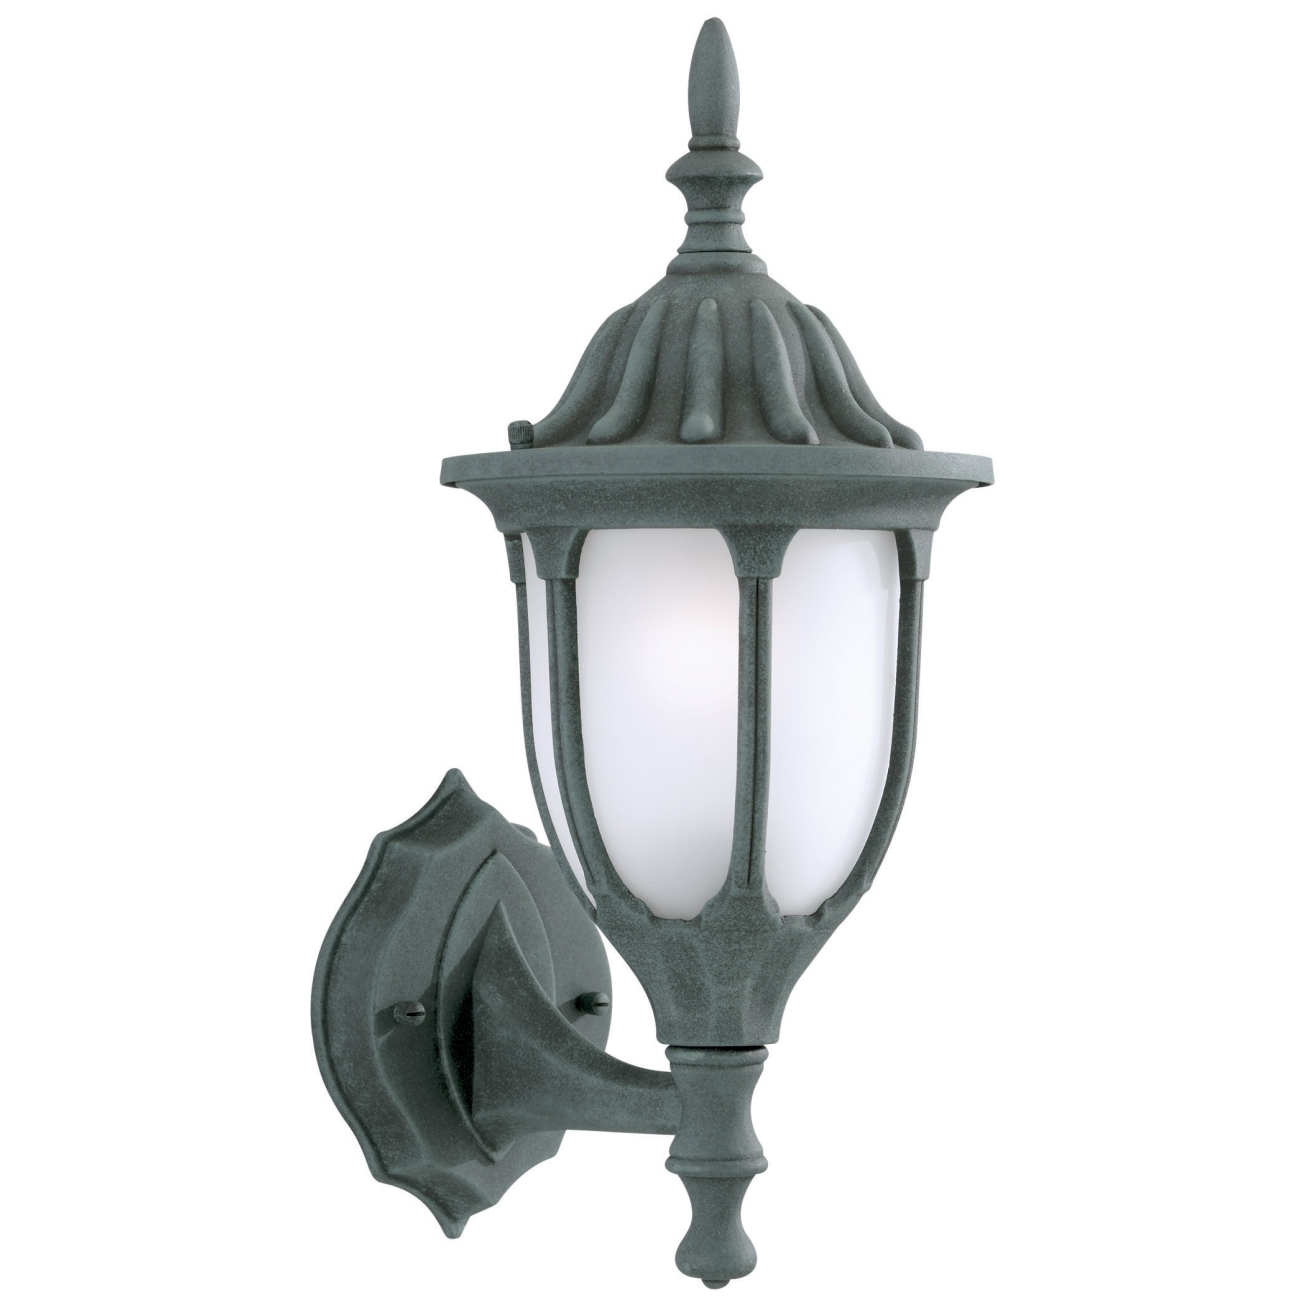 Most Recently Released Exterior Light Fixtures & Outdoor Wall Lighting At Ace Hardware Within Plastic Outdoor Wall Lighting (View 7 of 20)